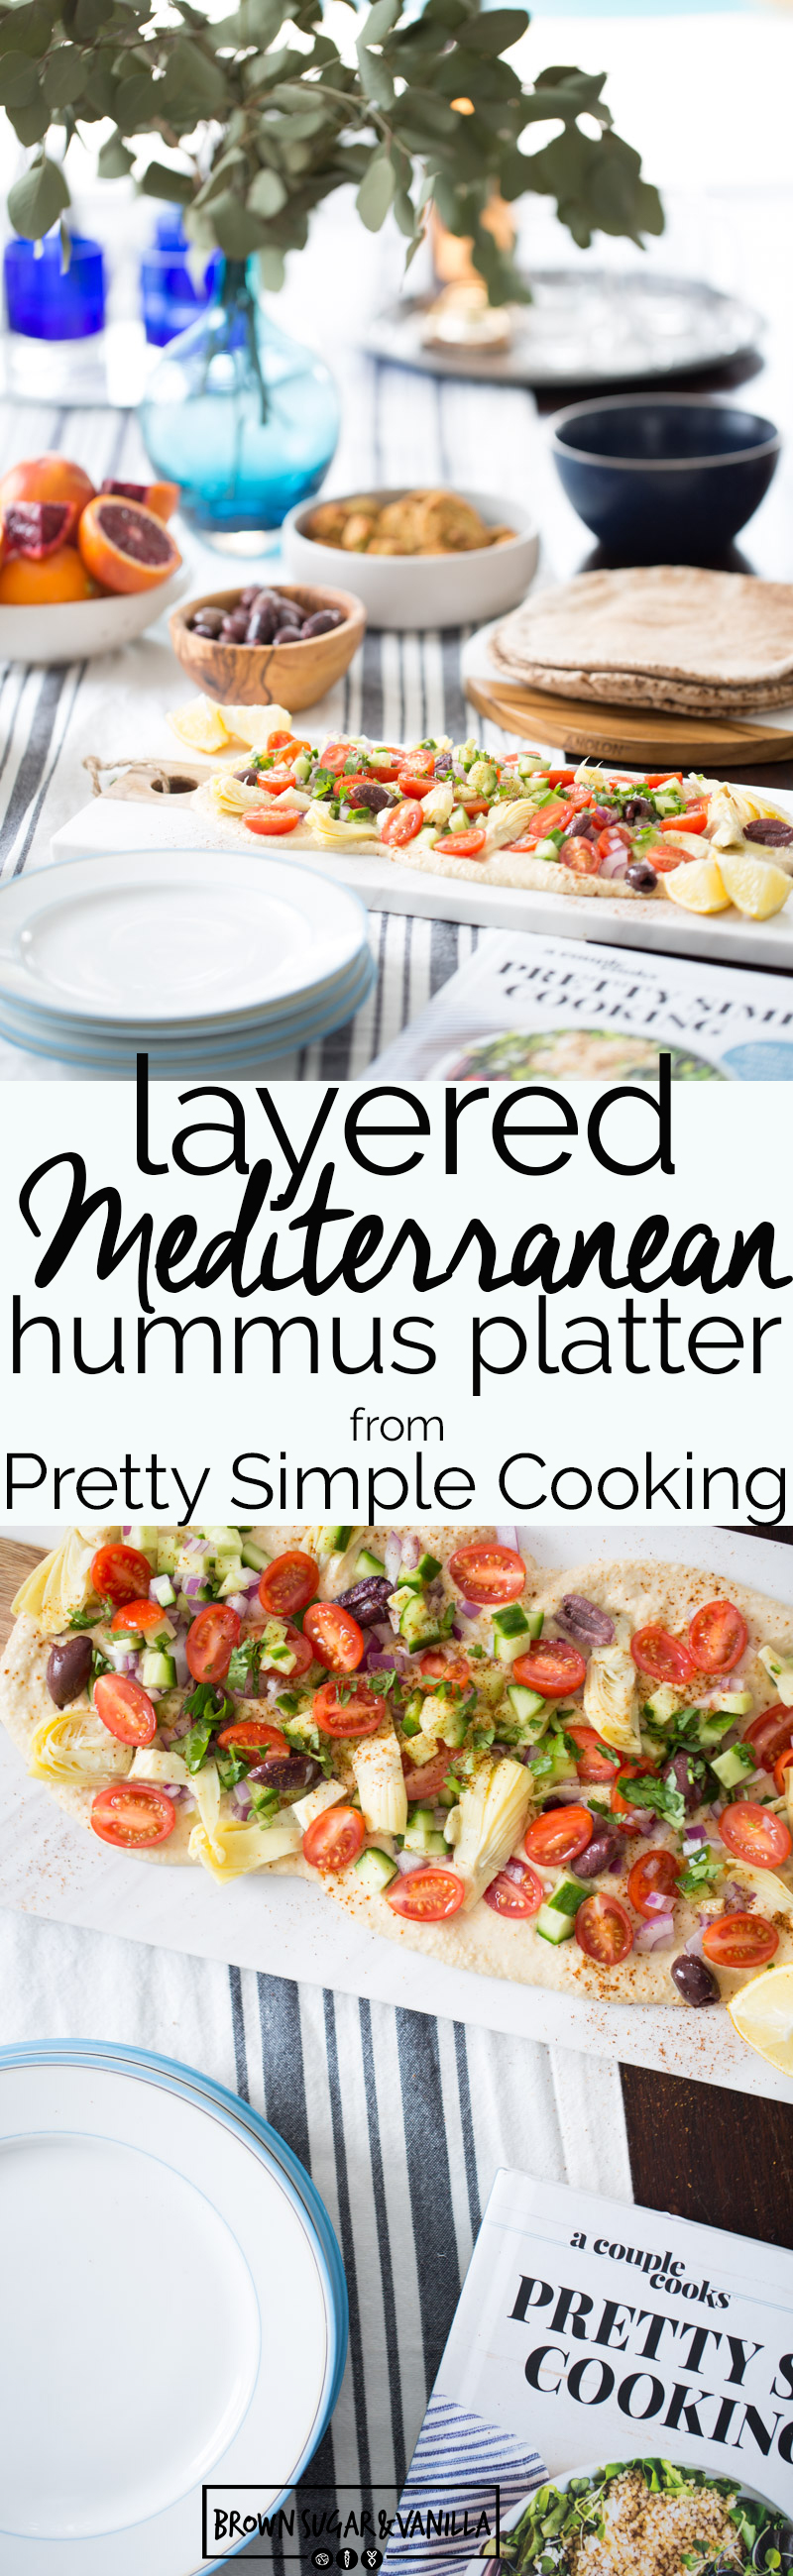 This recipe for Layered Mediterranean Hummus from Pretty Simple Cooking it is delicious and very easy to put together. It is a show stopper and crowd pleaser. #vegan, #healthy, #healthycooking